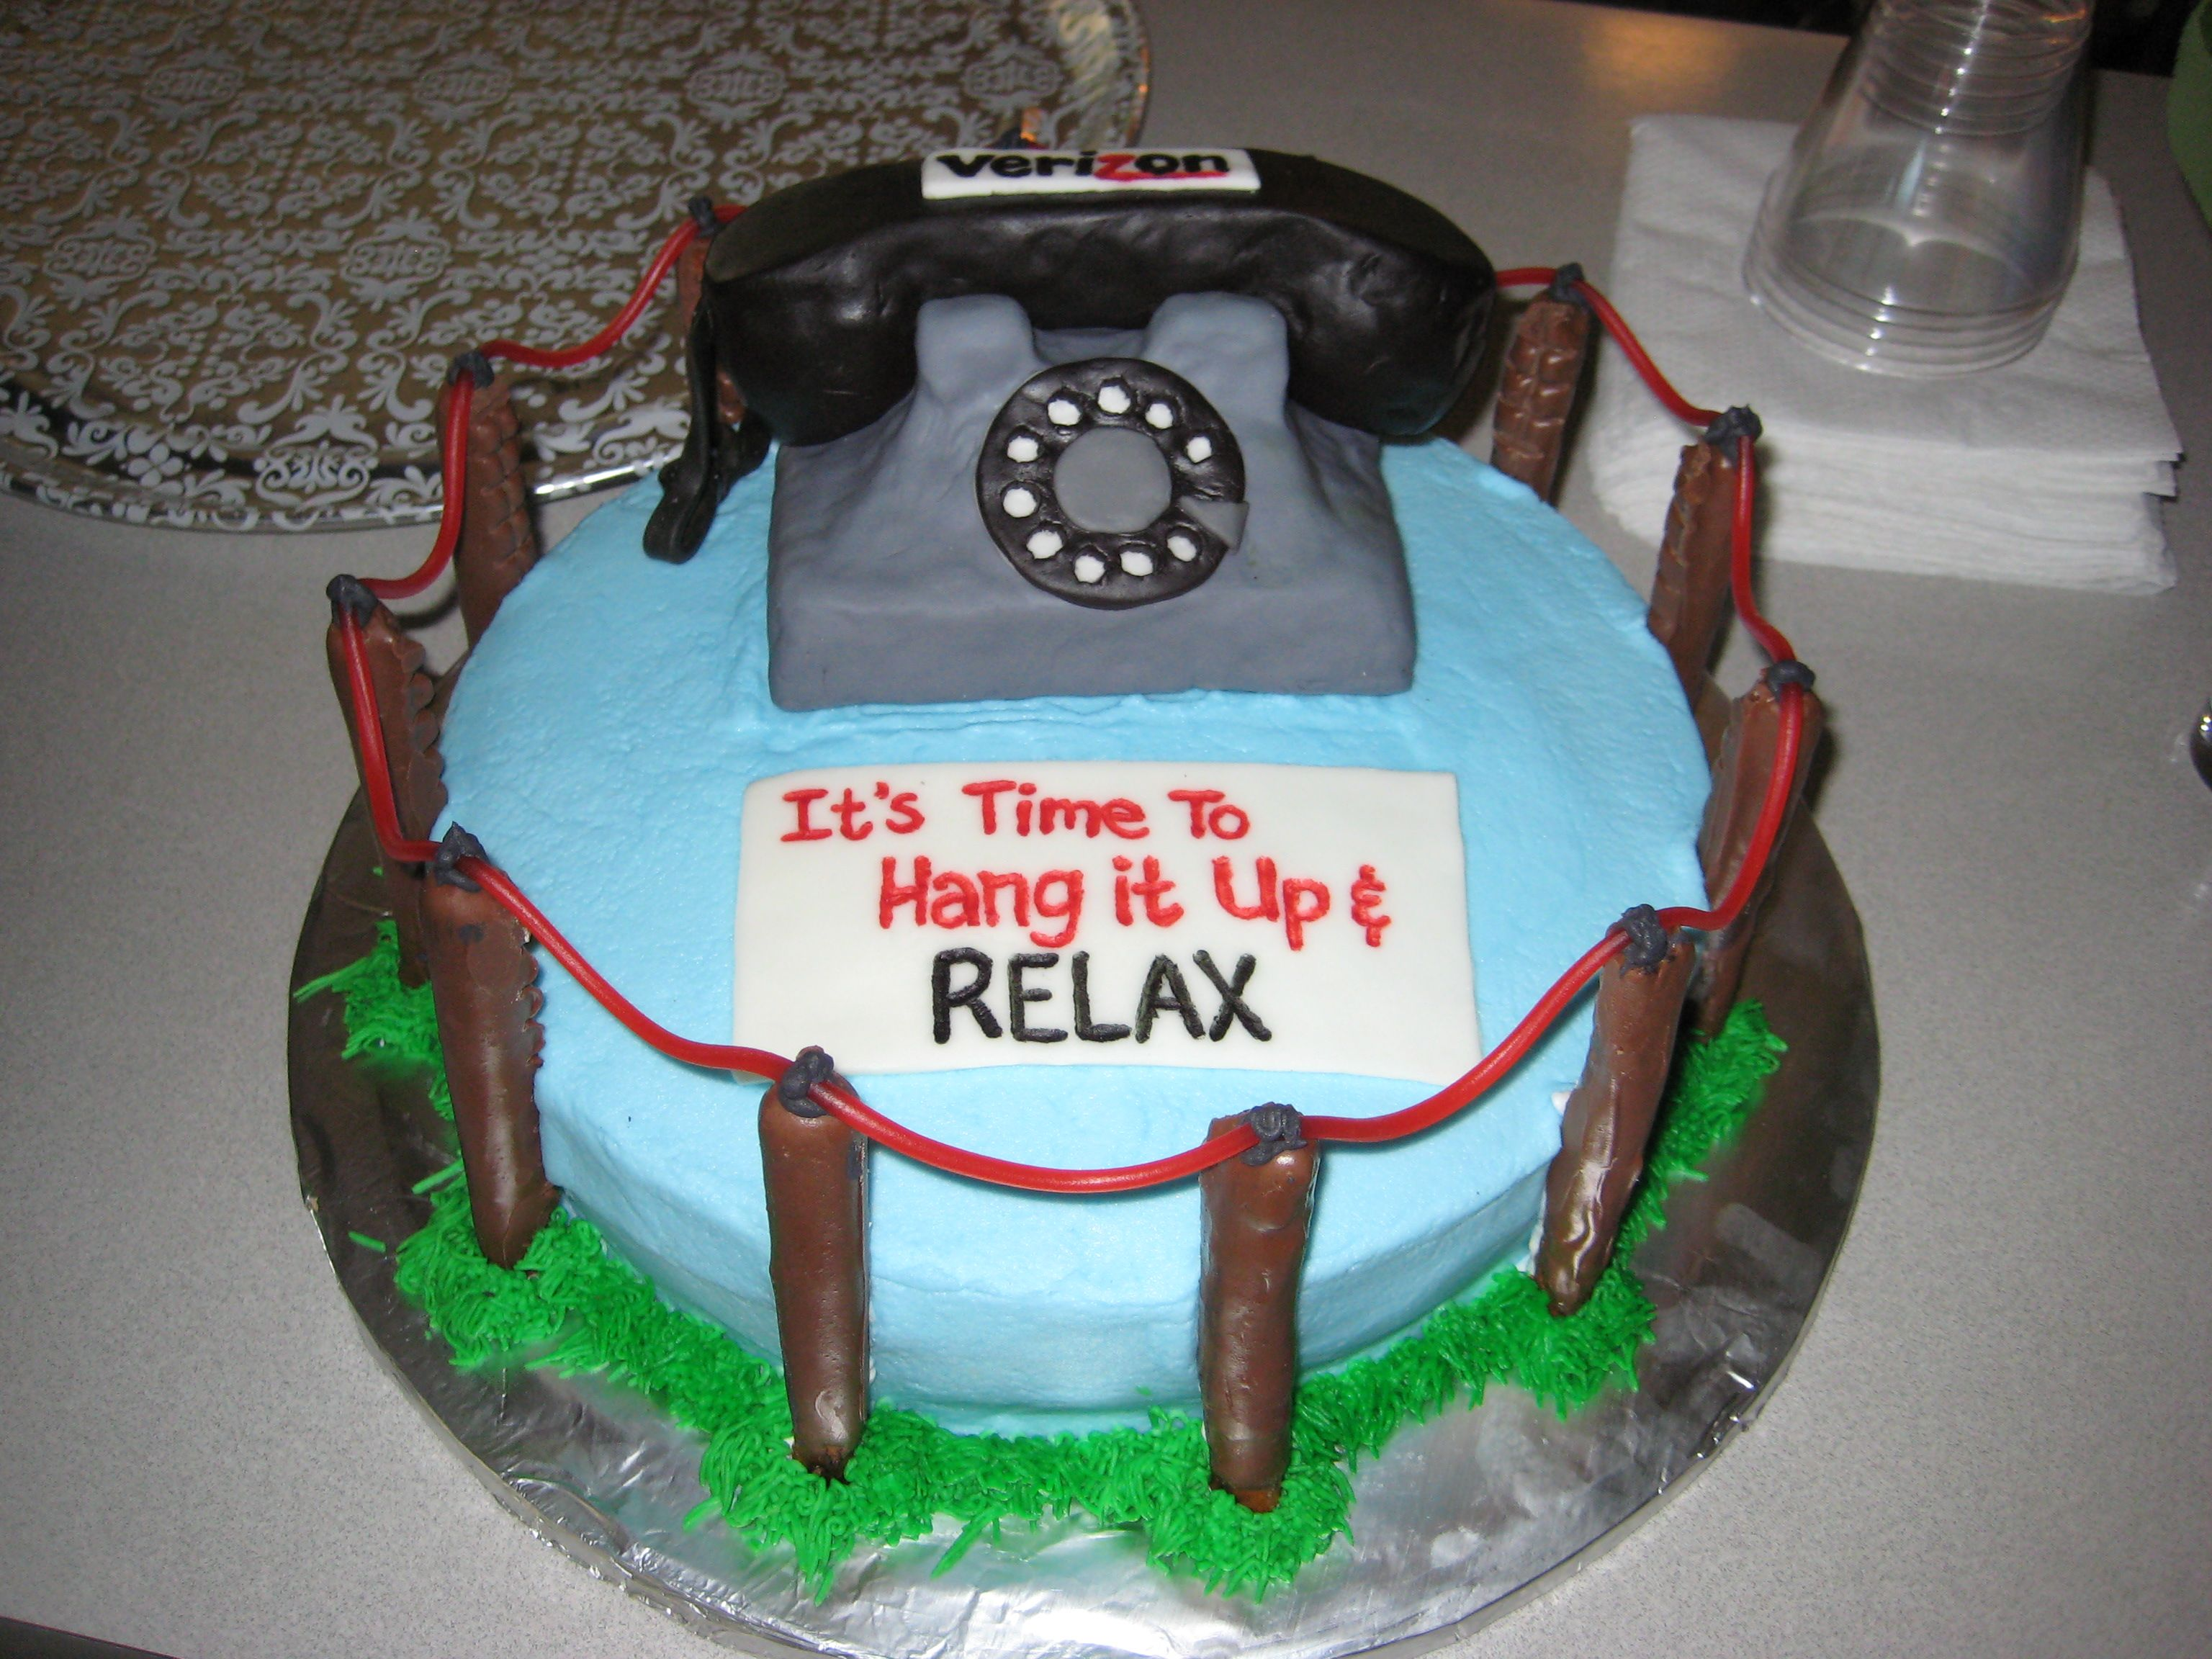 Air force cake decorations home furniture decors creating the - Retirement Cake